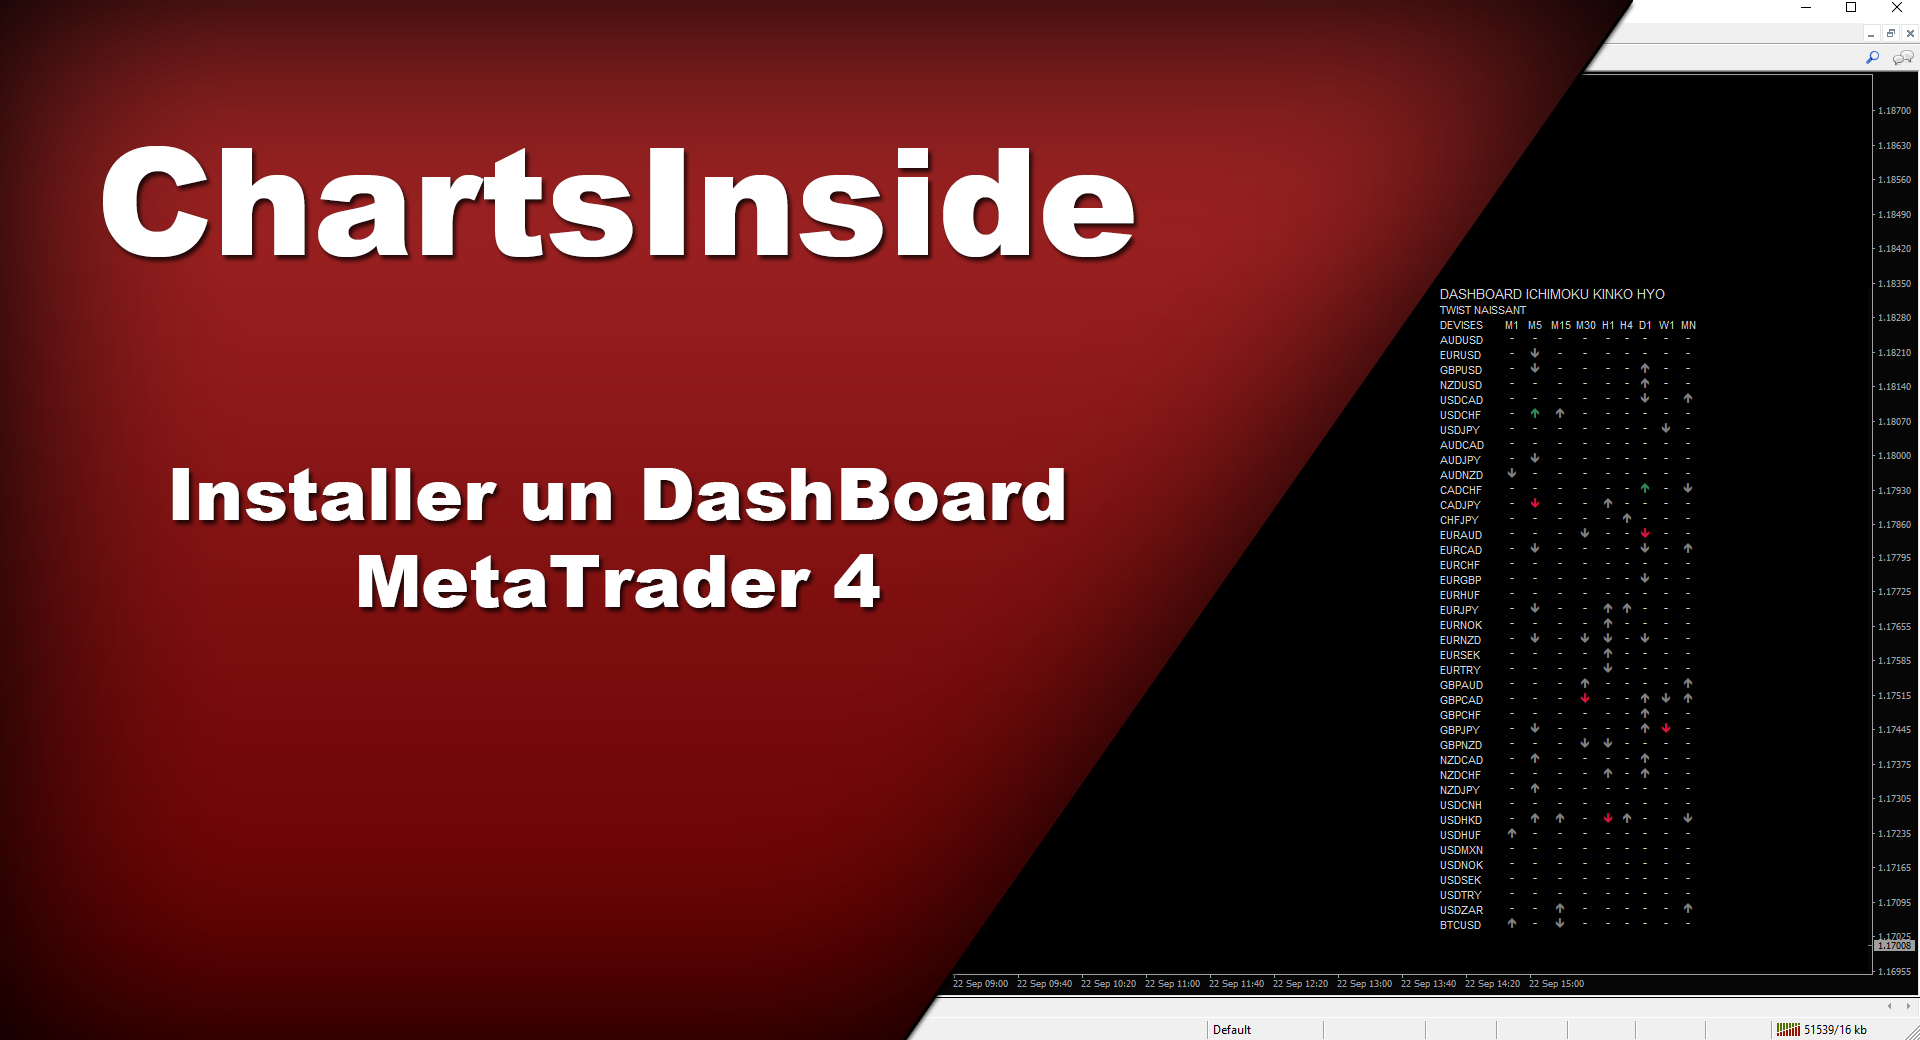 Installer un DashBoard MetaTrader4